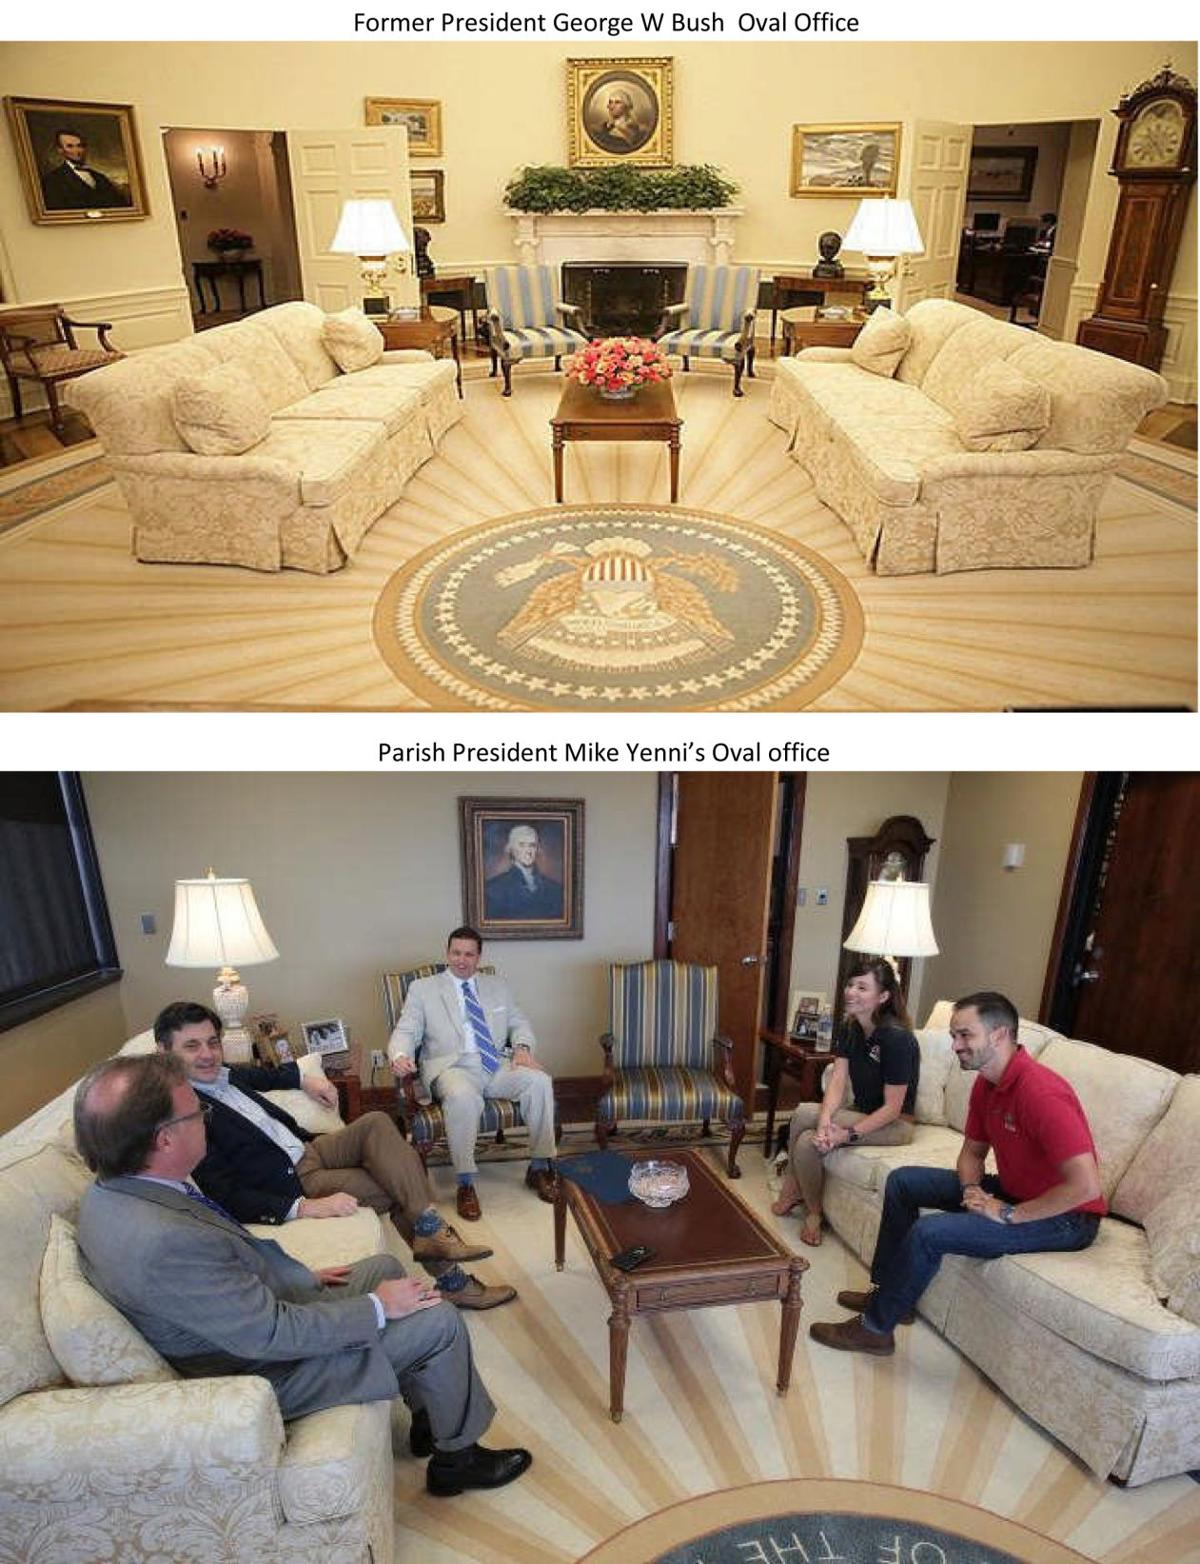 oval office furniture. Parish President Mike Yenni\u0027s Oval Office Furniture